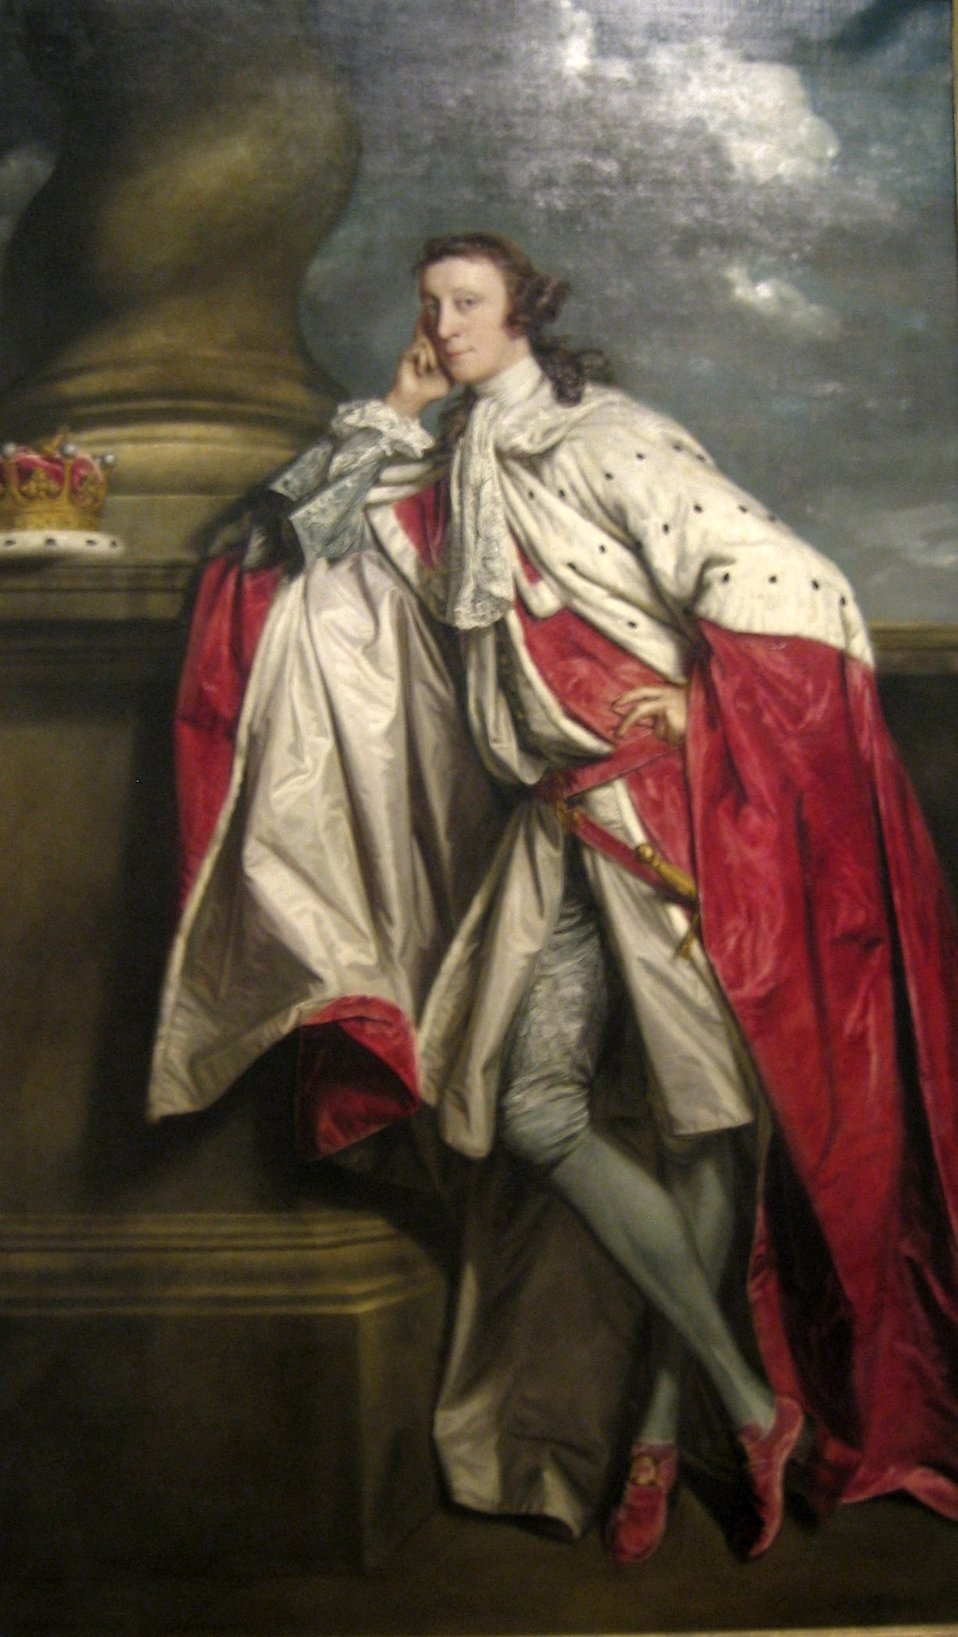 'James Maitland, 7th Earl of Lauderdale', oil on canvas painting by Sir Joshua Reynolds, c. 1790, Art Gallery of New South Wales.jpg